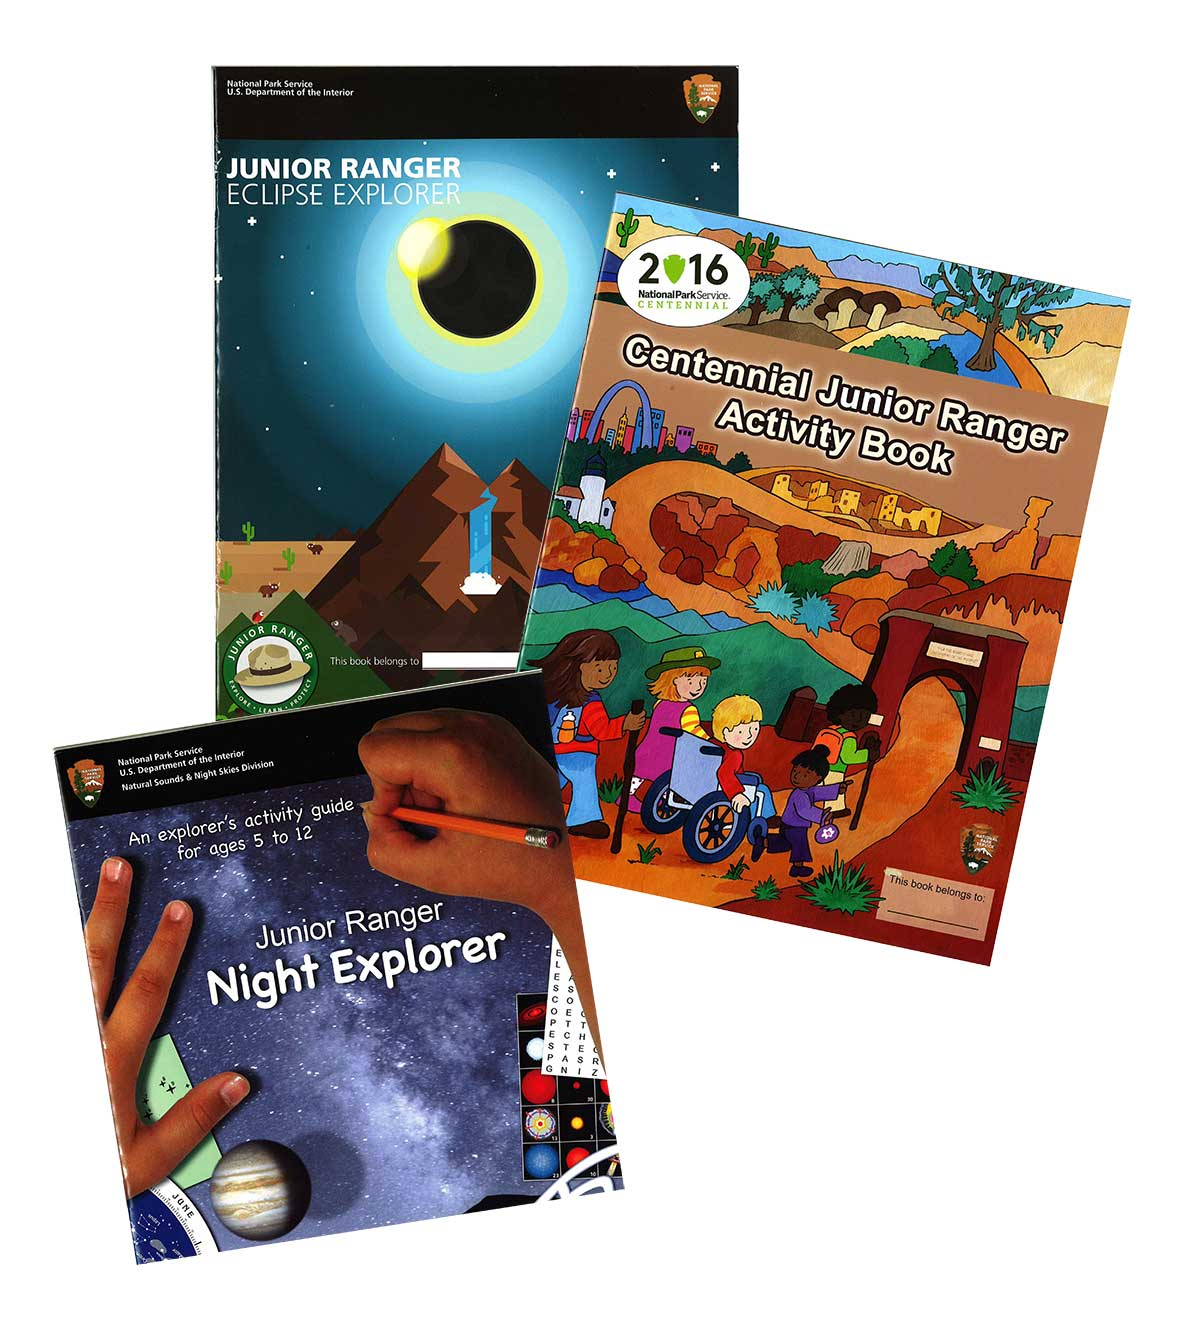 A photo of 3 junior ranger activity booklets -Night Skies, Centennial, and Solar Eclipse